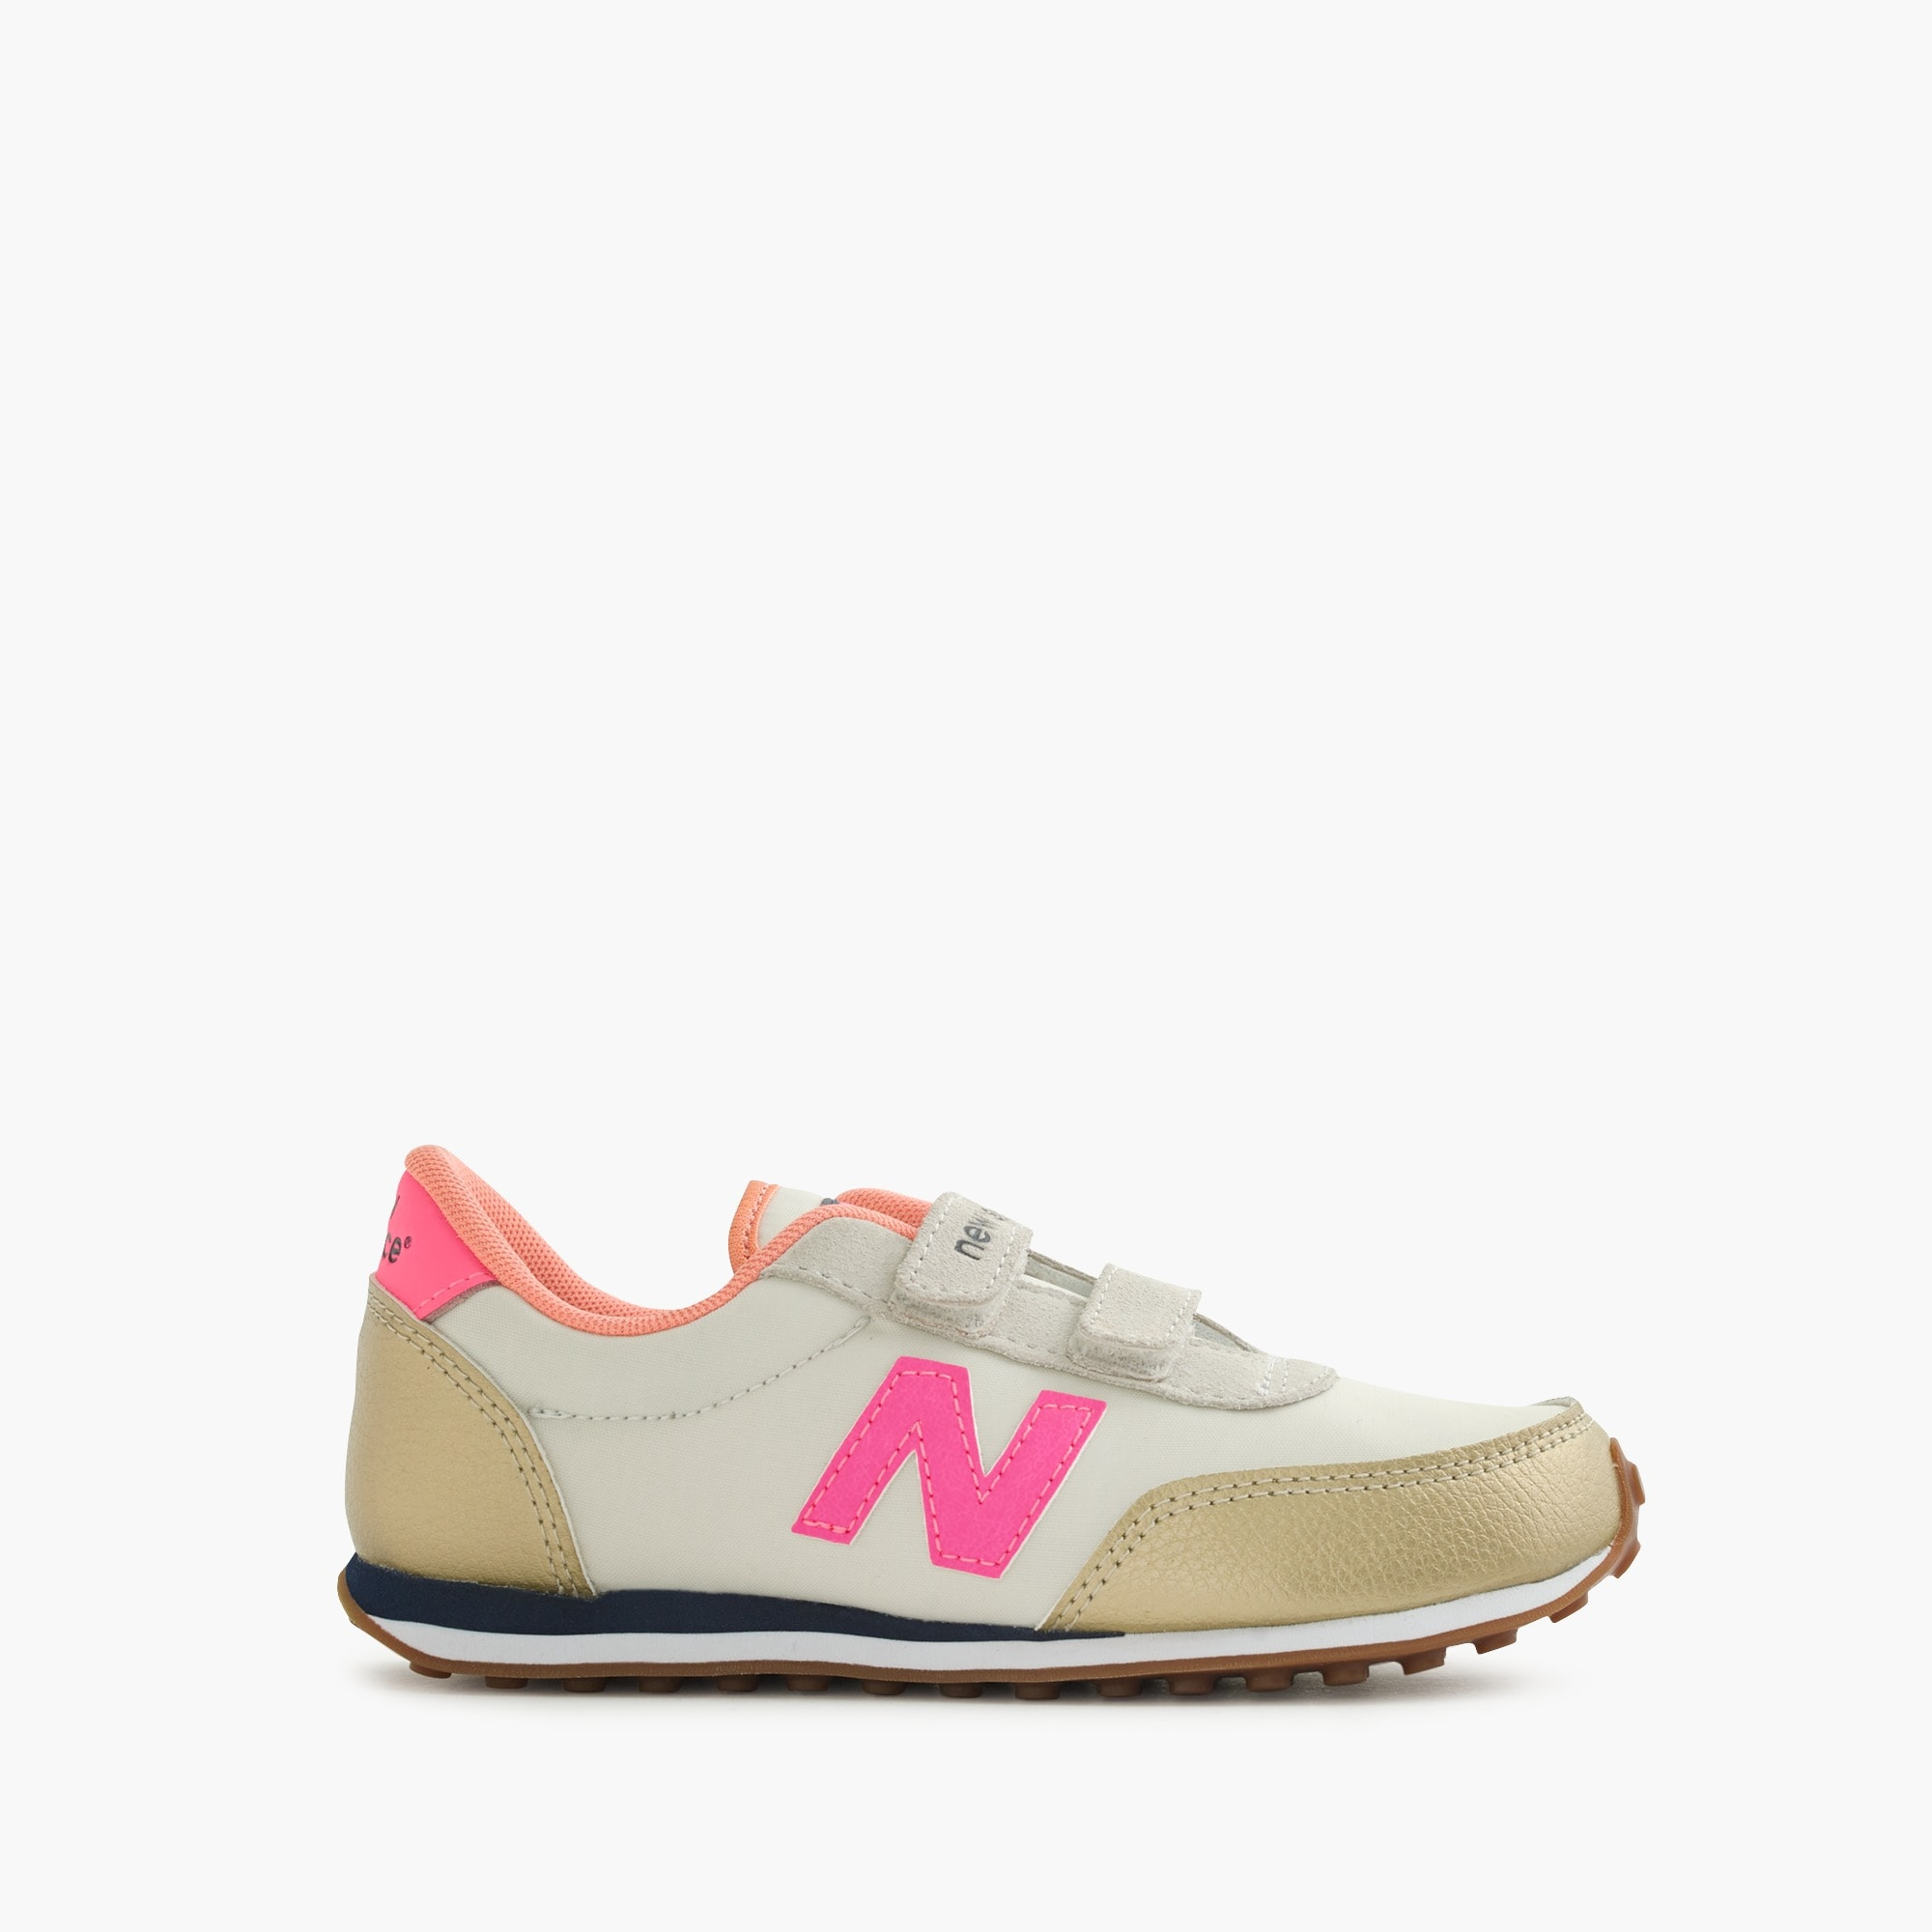 Girls' New Balance for crewcuts 410 sneakers in metallic girl shoes & sneakers c